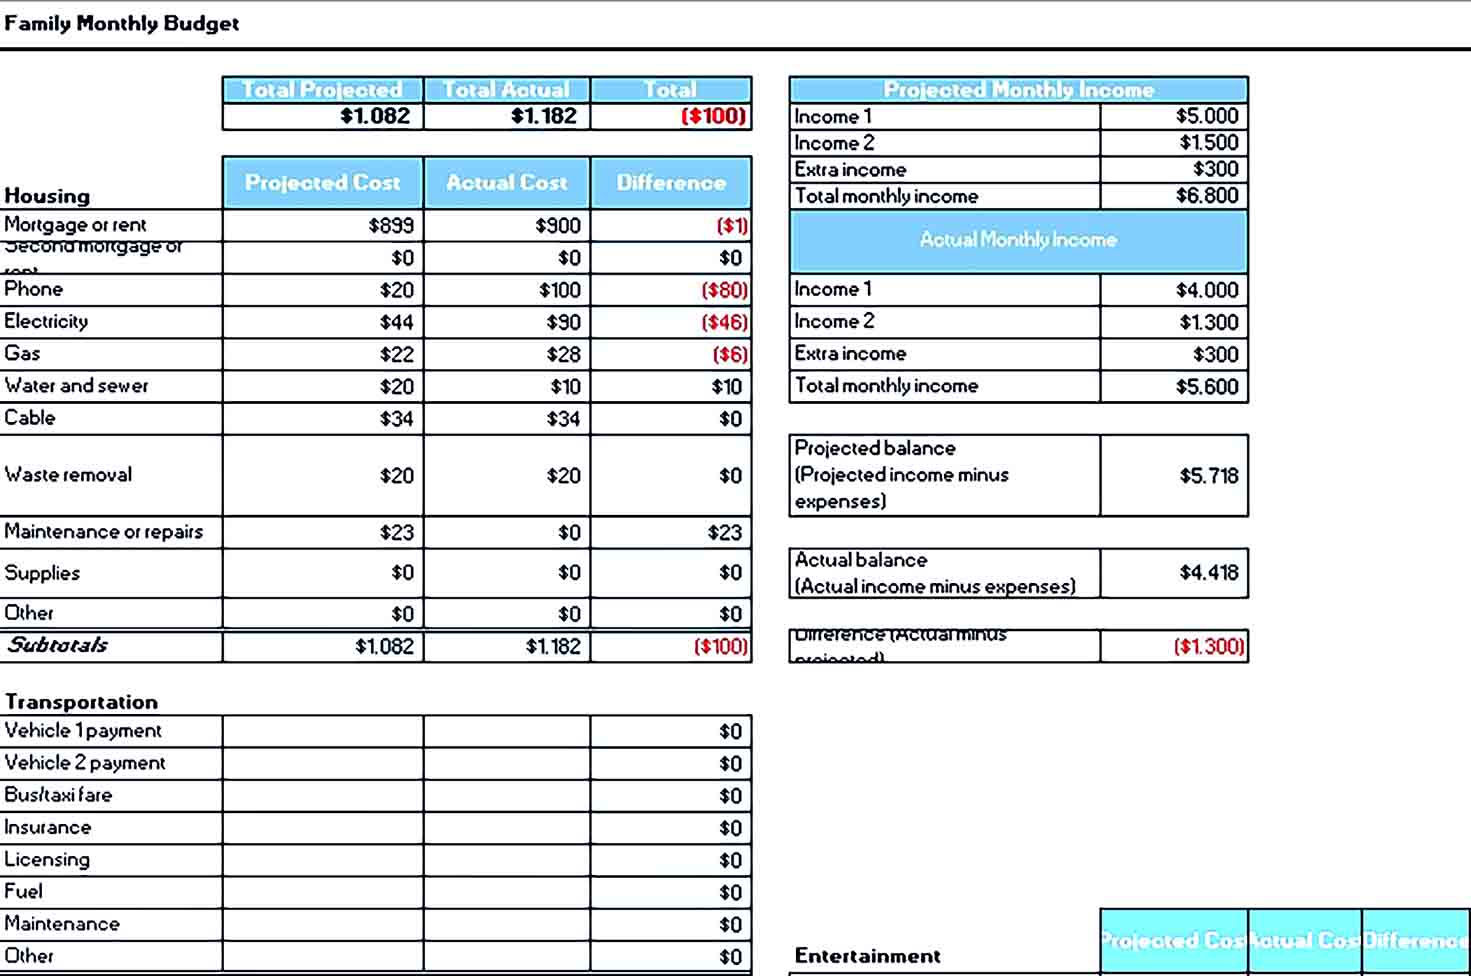 Sample family monthly budget 1 1